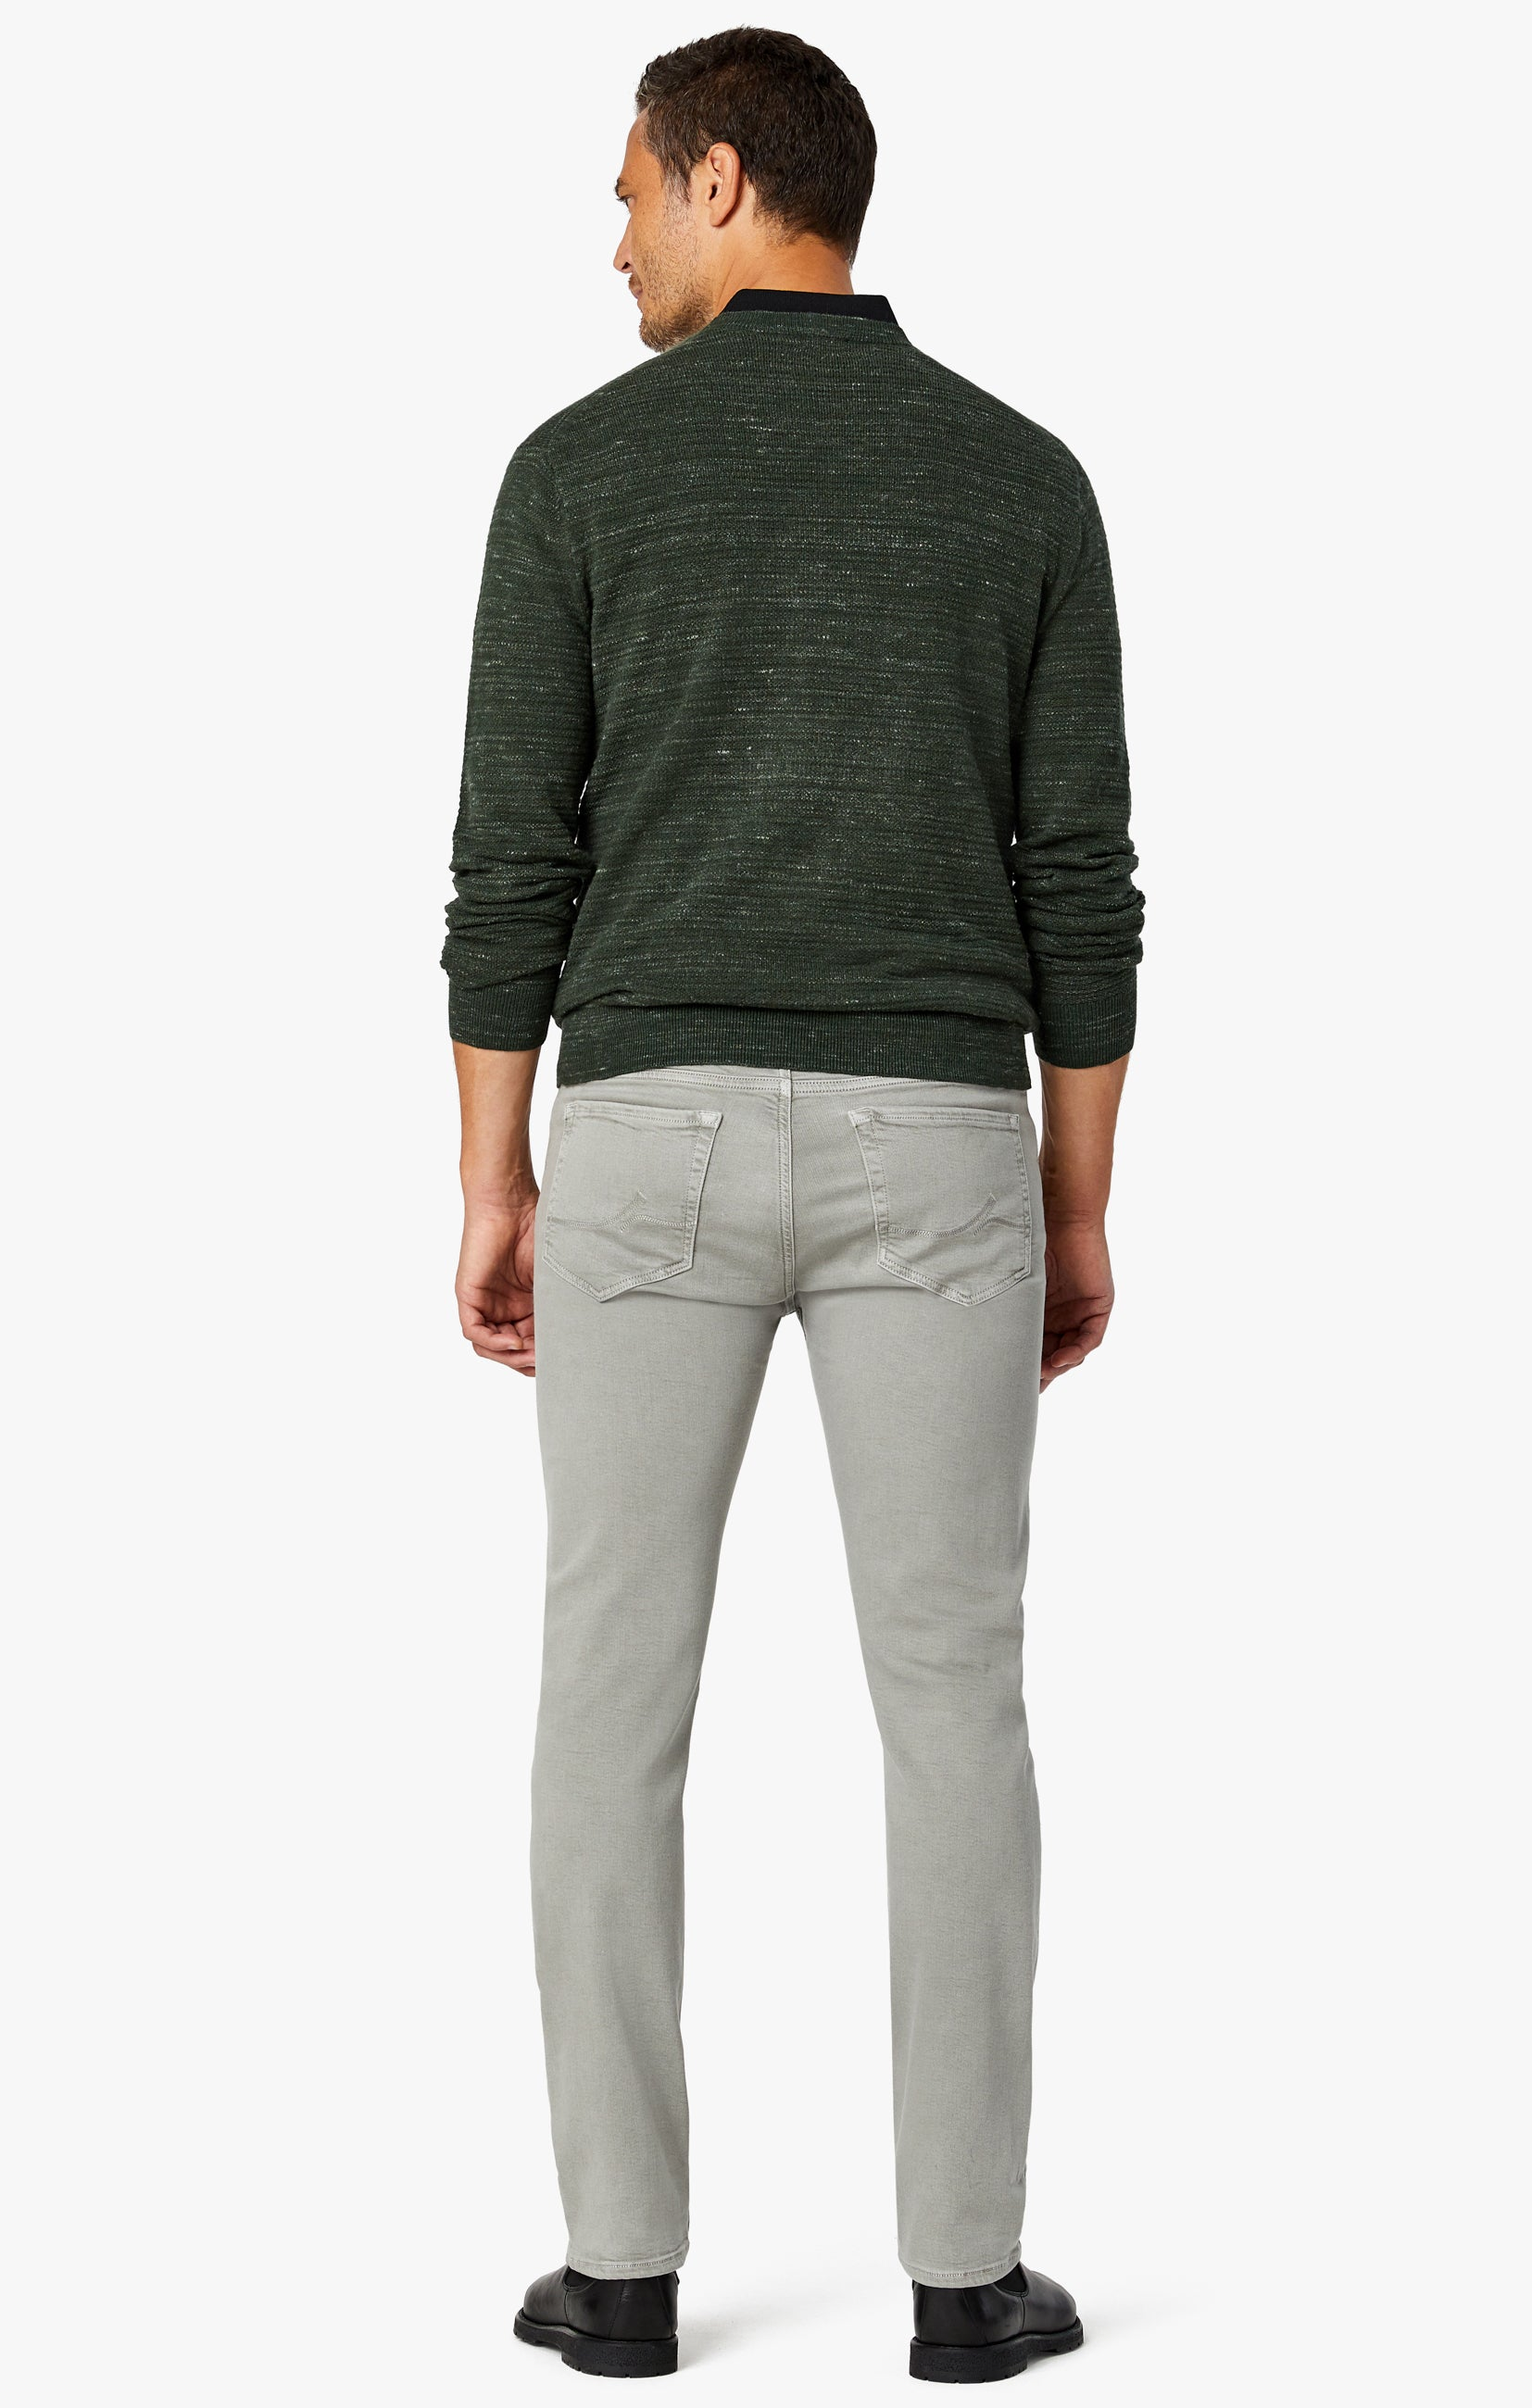 Charisma Classic Fit Jeans in Light Grey Comfort Image 4